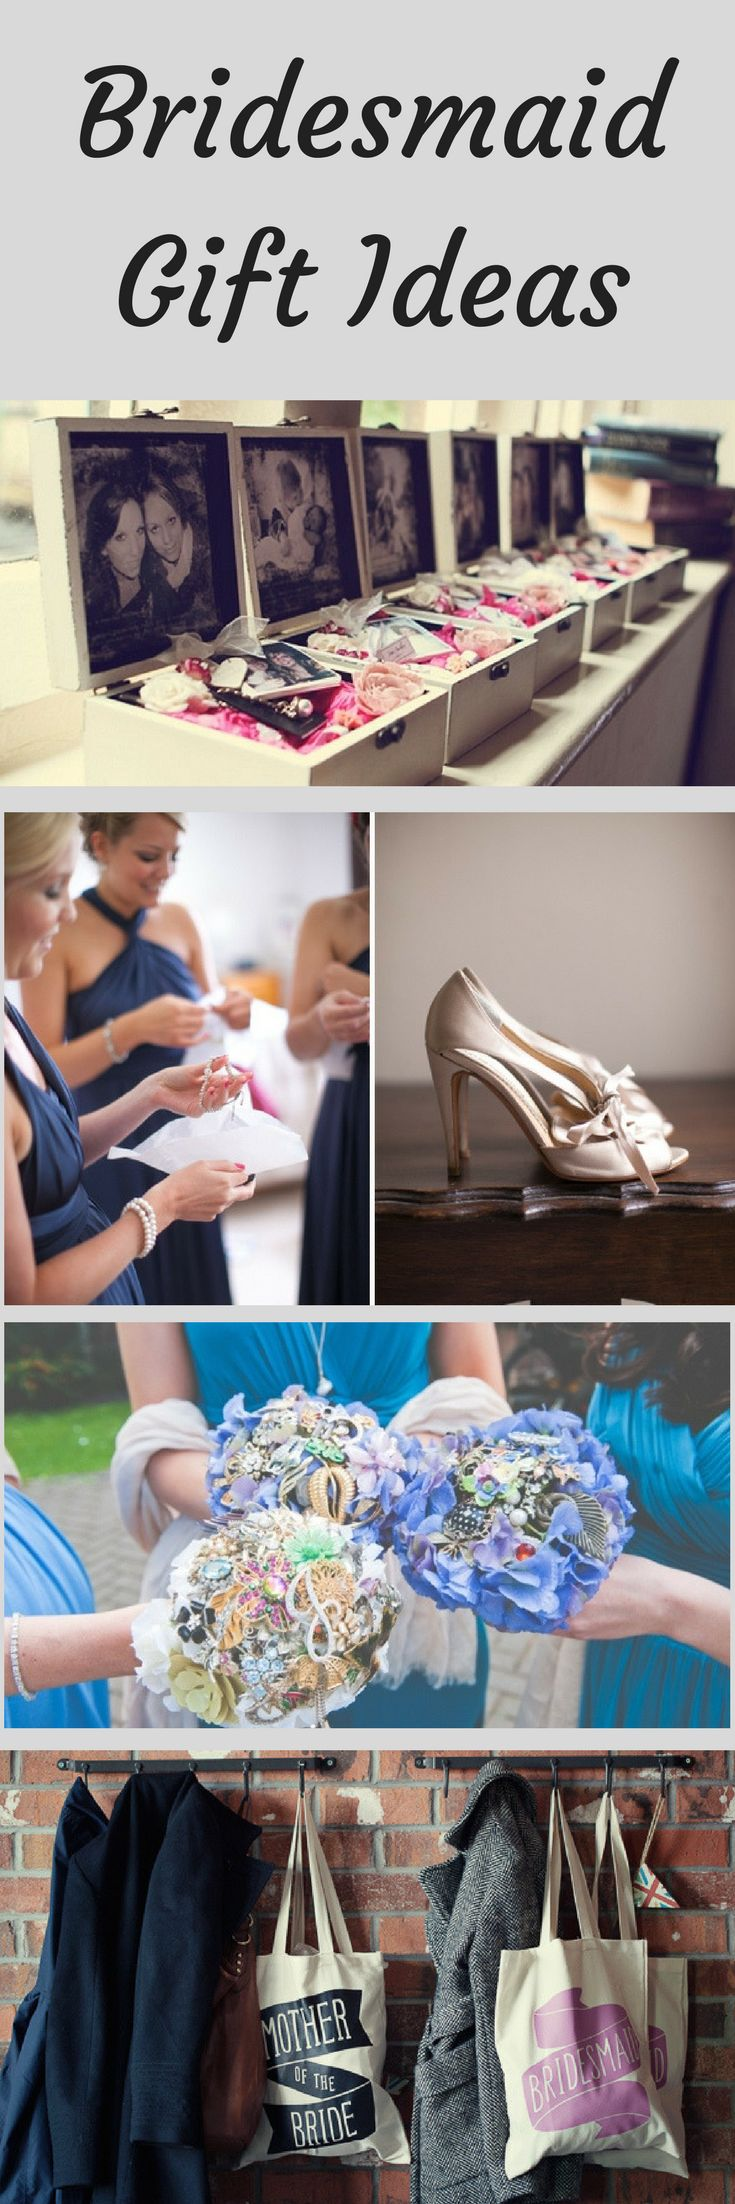 It's a nice gesture to give your bridesmaids a gift before the wedding; a token of appreciation for supporting you and helping you plan your big day. Check out these thoughtful bridesmaids' gifts to suit any budget or style. #weddinginspiration